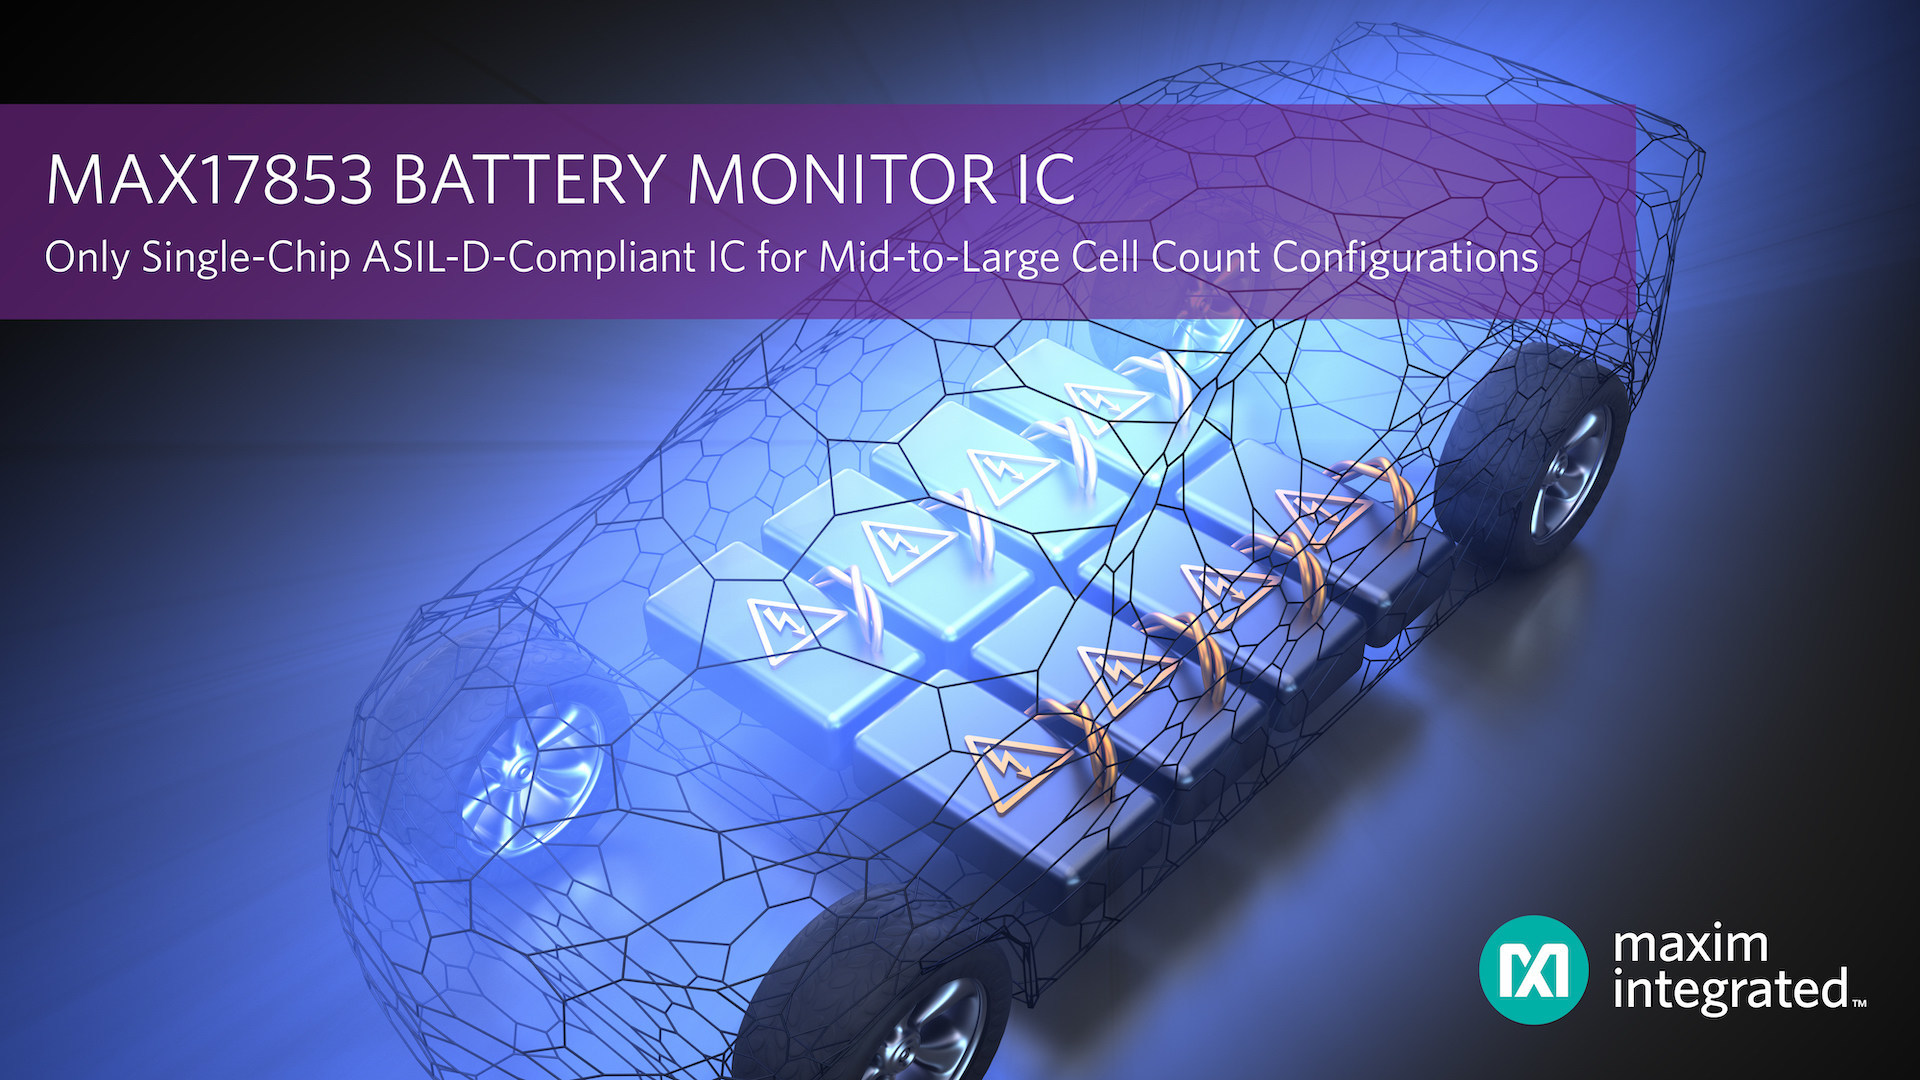 Maxim's Battery Monitor IC is the Industry's Only Single-Chip  ASIL-D-Compliant IC for Mid-to-Large Cell Count Configurations